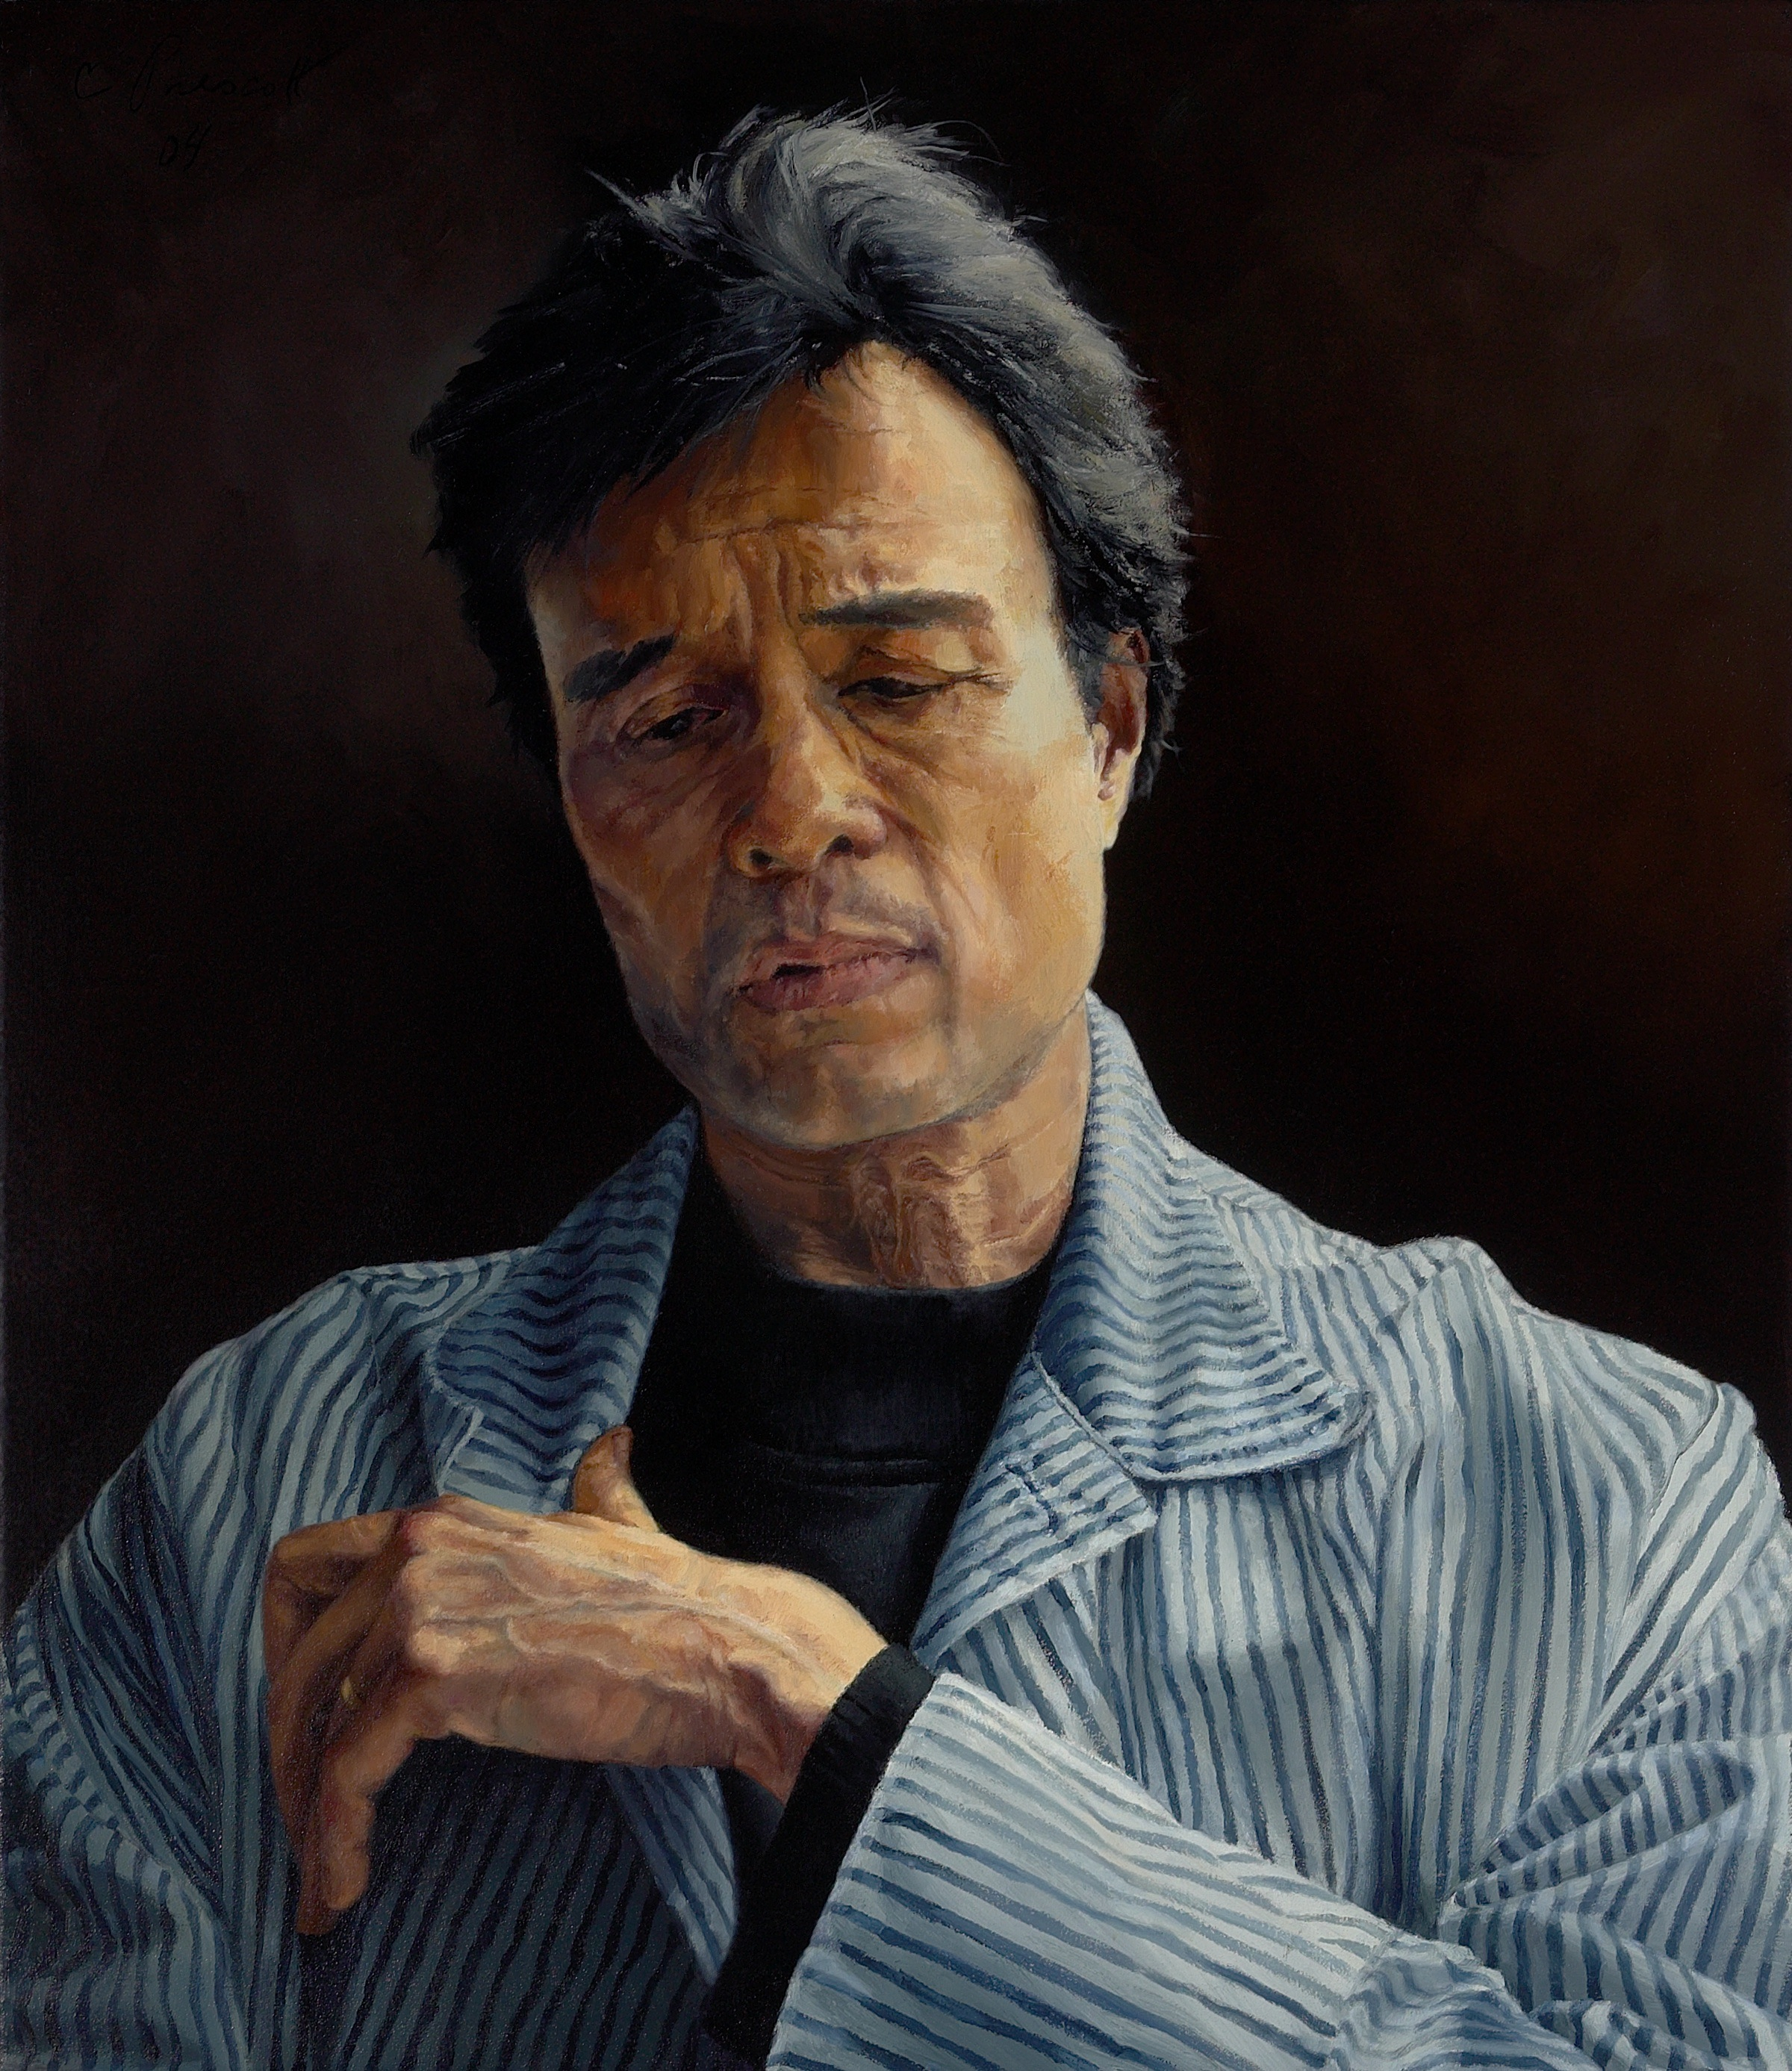 "Wayne Longing, Swallowing , Oil on Canvas, 2004, 36"" x 24"""